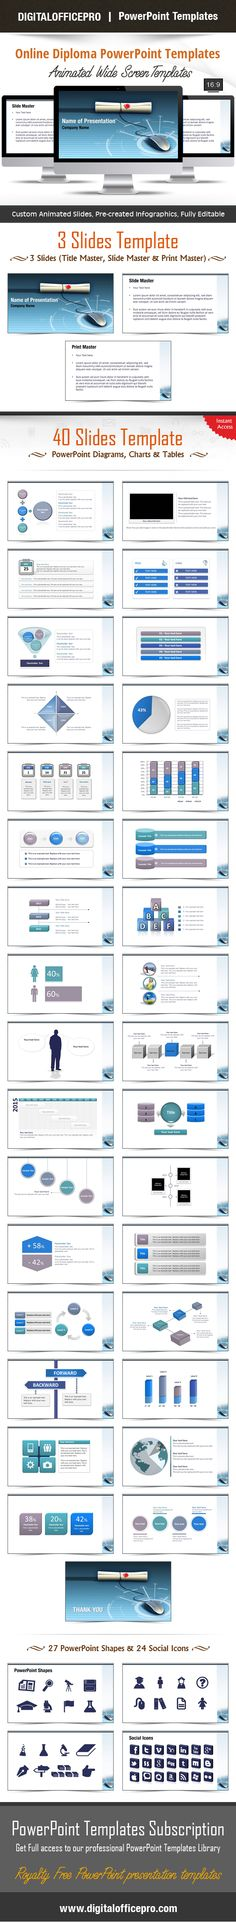 Simple impressive powerpoint template graphicriver item for simple impressive powerpoint template graphicriver item for sale powerpoint pinterest ppt design presentation templates and presentation design toneelgroepblik Choice Image